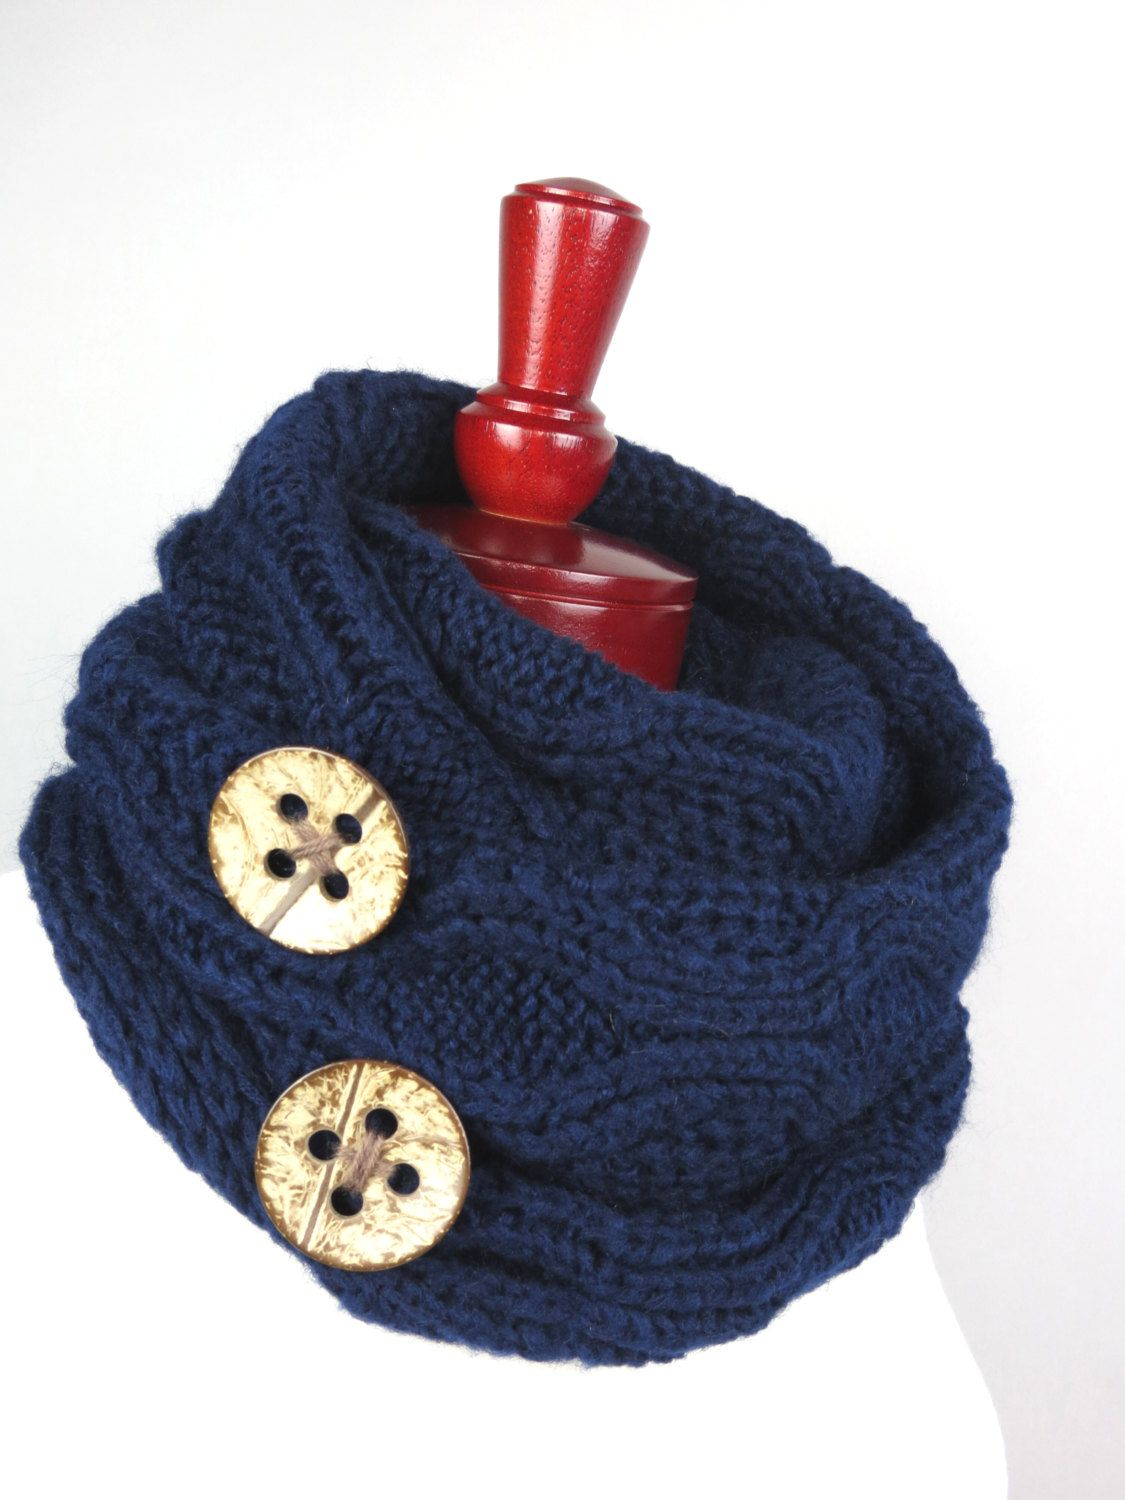 Navy Blue Knitted Chunky Infinity Scarf Coconut Buttons Woman Scarf Fashion Accessory Cozy Loop Scarf